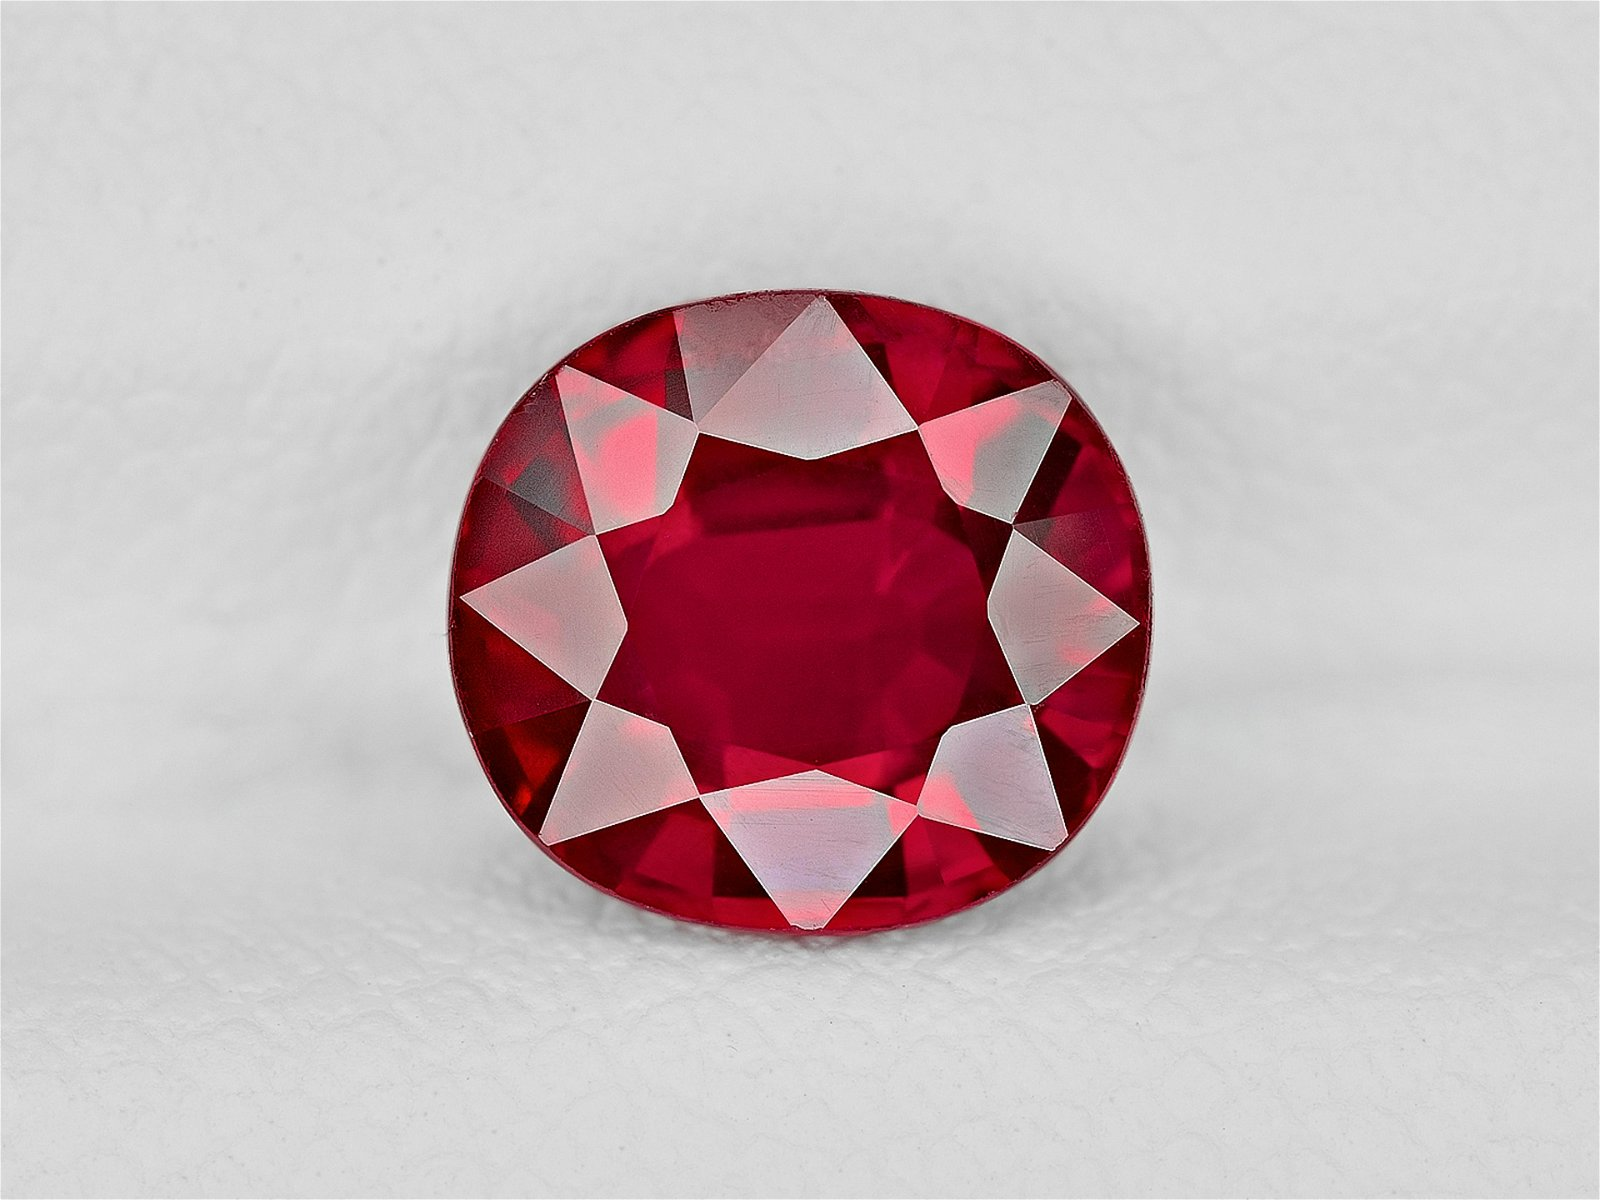 Ruby, 2.04ct, Mined in Mozambique, Certified by GRS